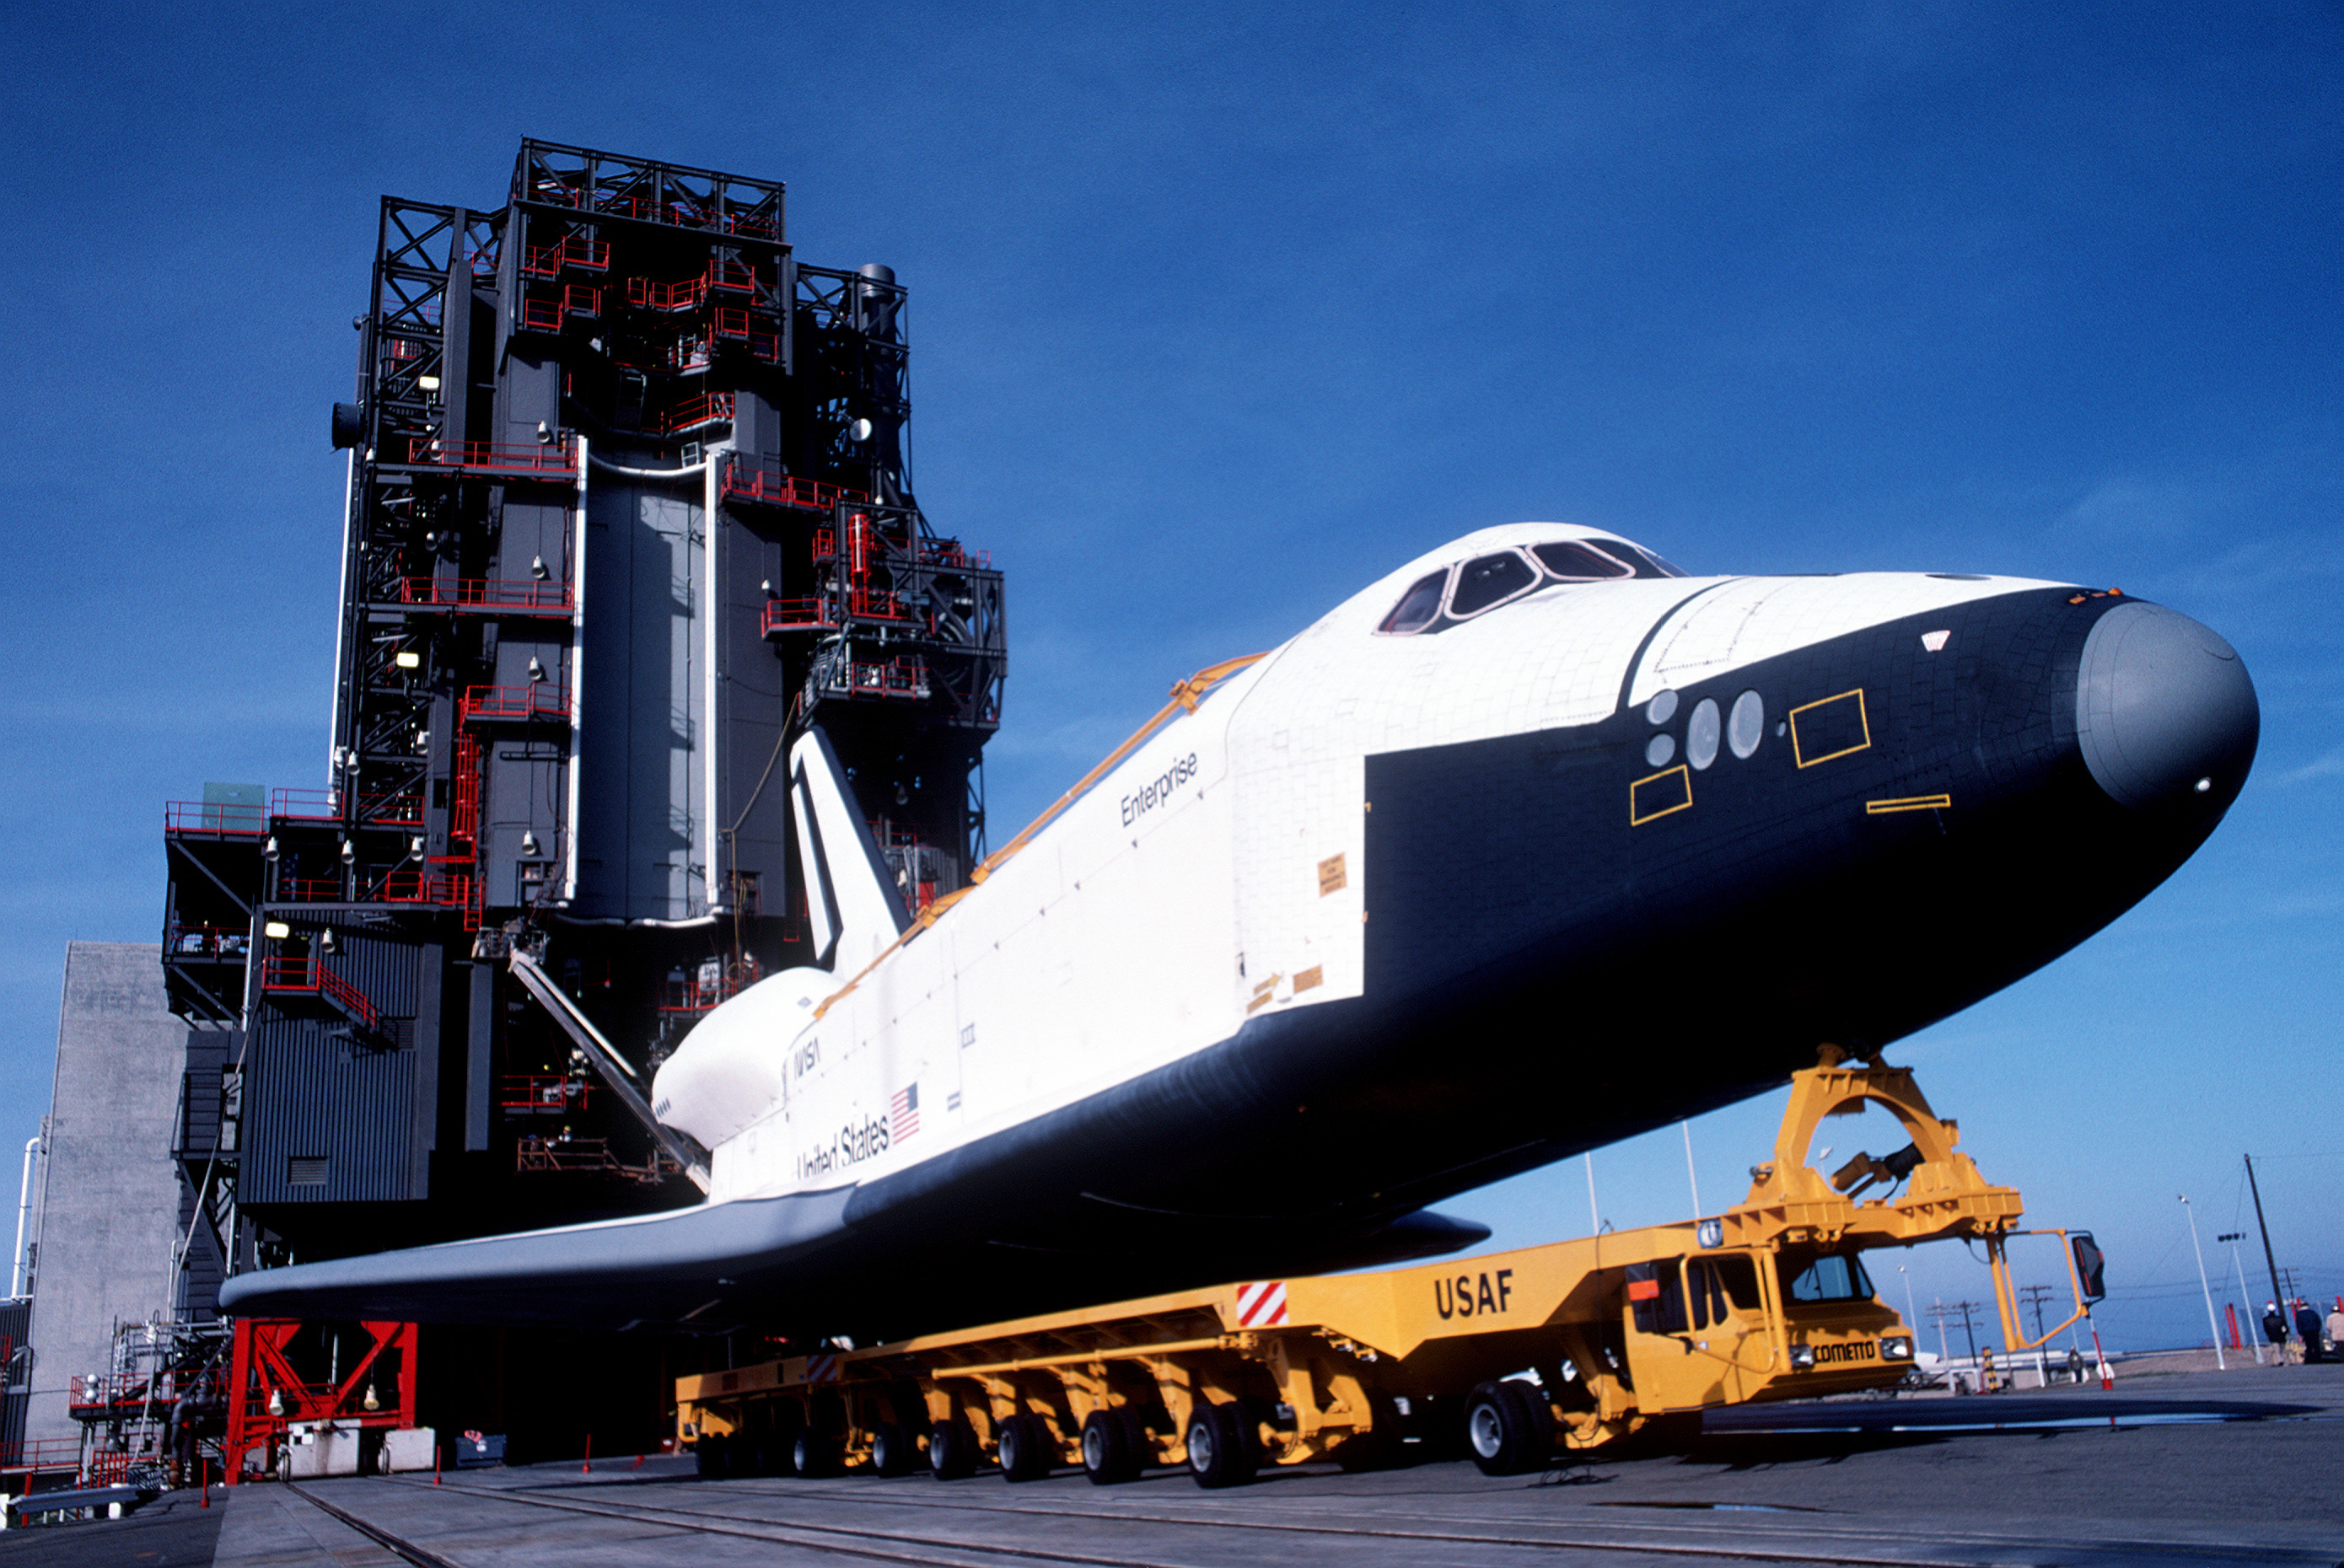 space shuttle at vandenberg - photo #21